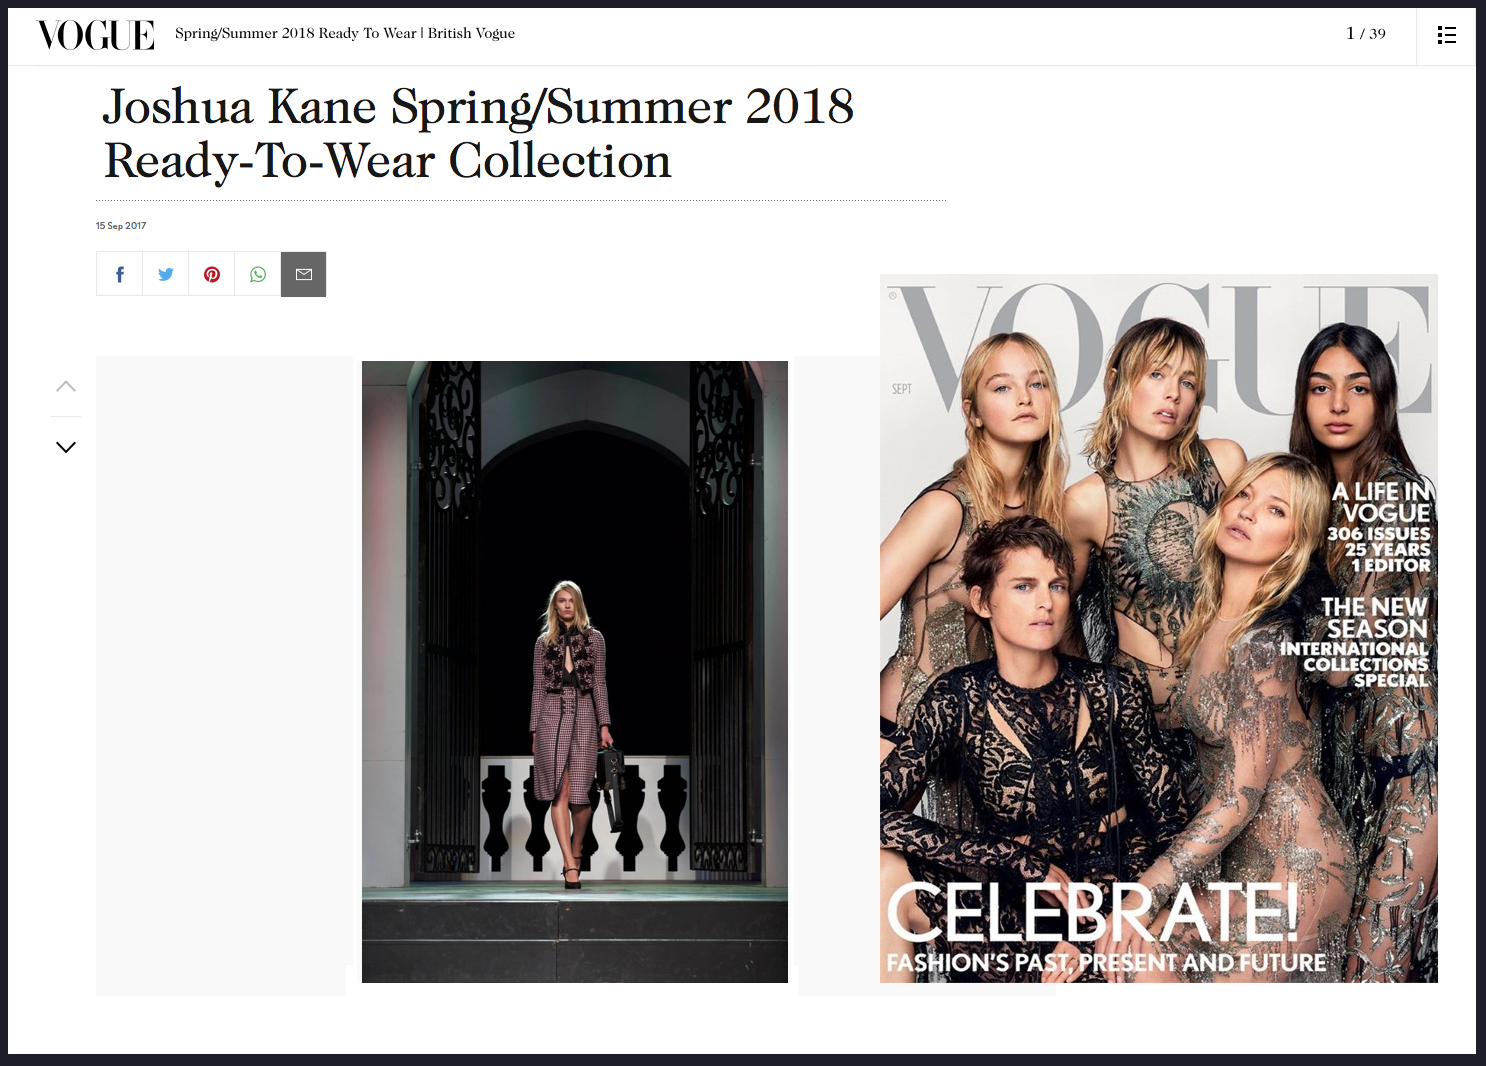 Copy of Joshua Kane Spring Summer 2018 Vogue